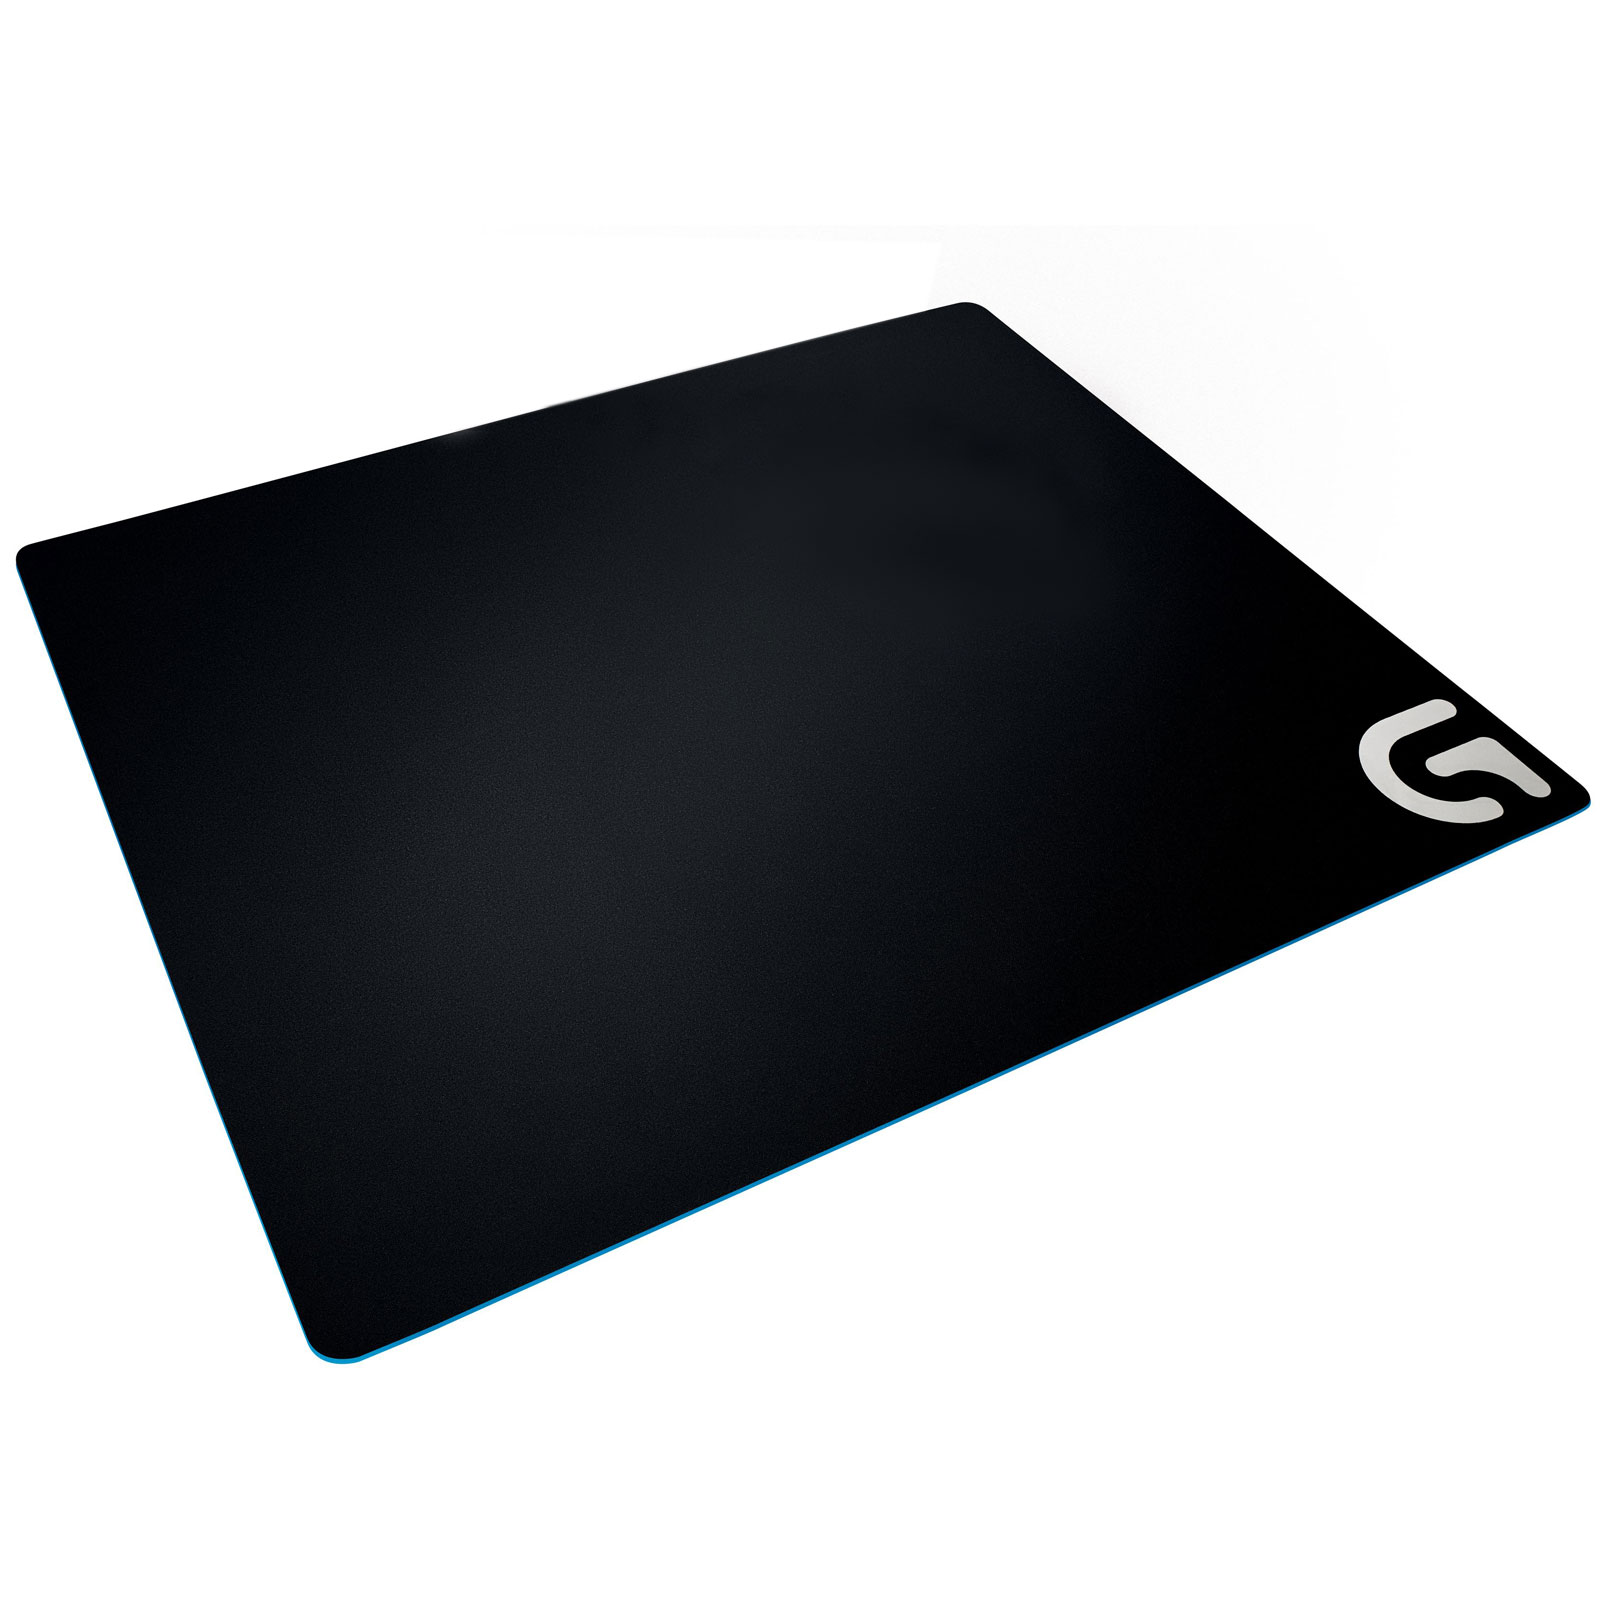 logitech g640 cloth gaming mouse pad tapis de souris. Black Bedroom Furniture Sets. Home Design Ideas